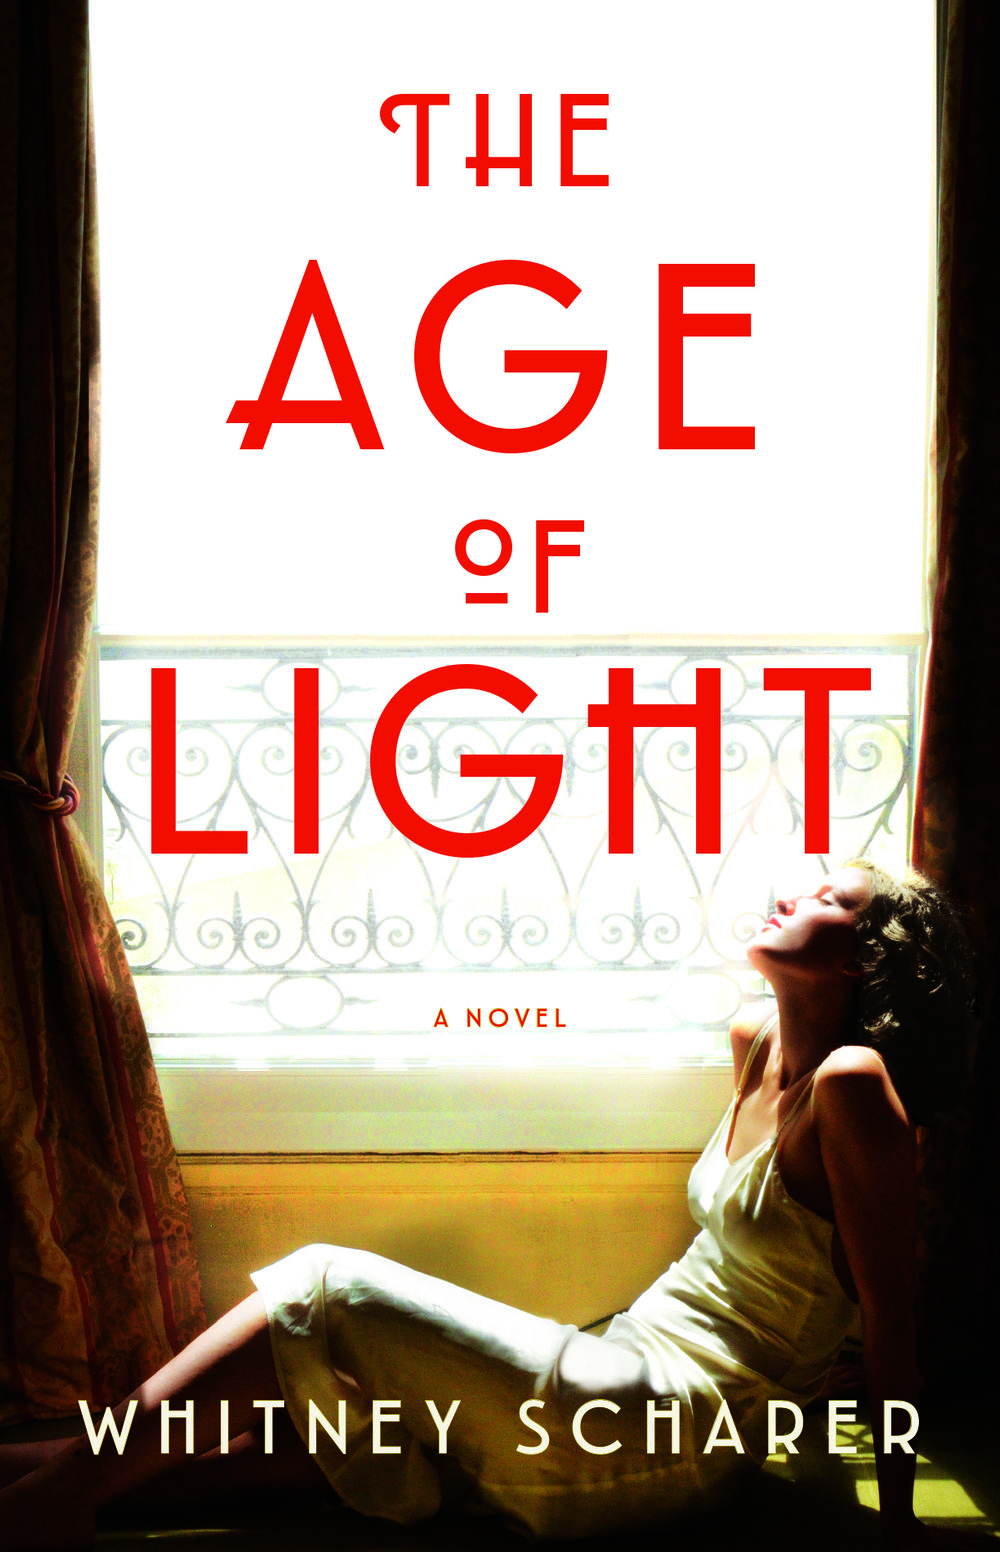 The Age of Light  by Whitney Scharer  Little, Brown —- February 5, 2019